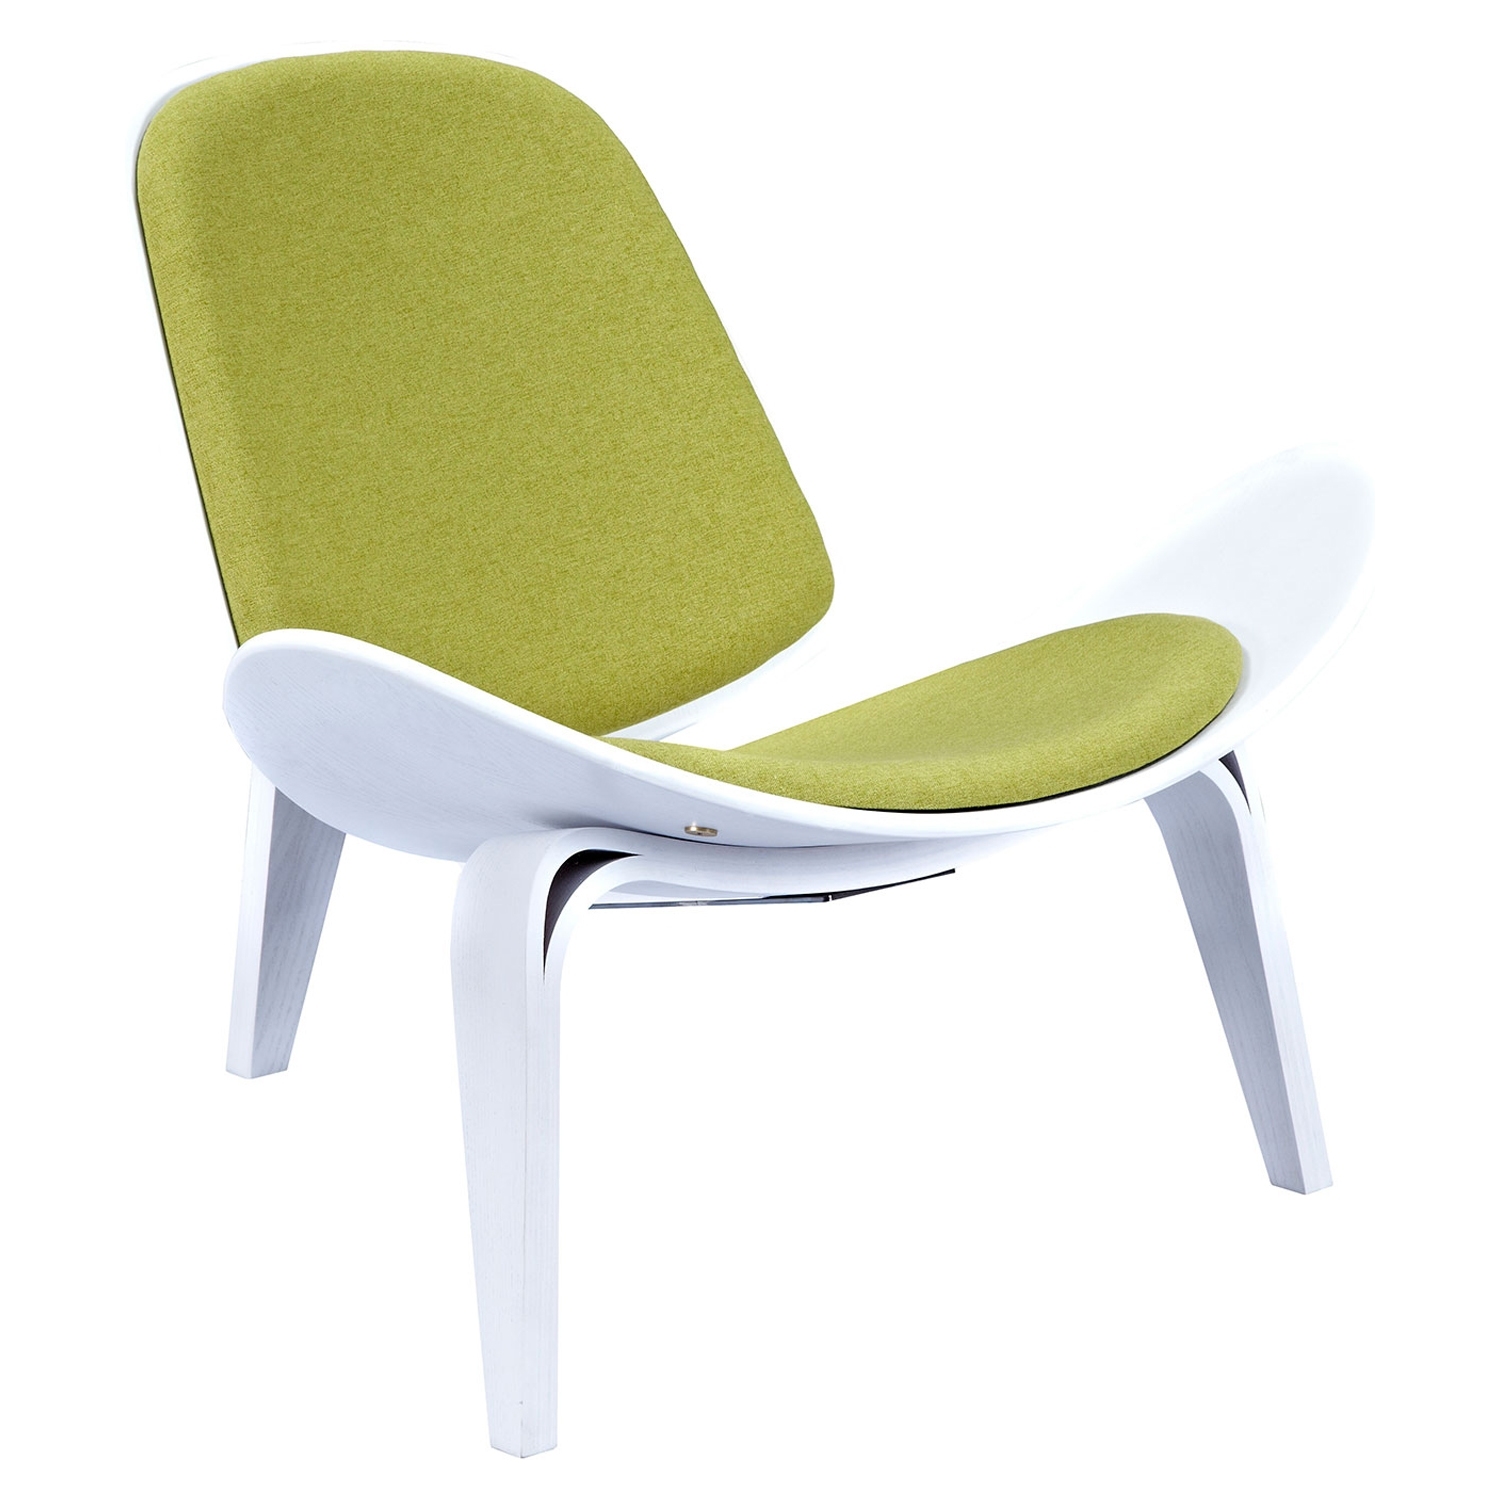 Shell Accent Chair - Avocado Green - NYEK-224432